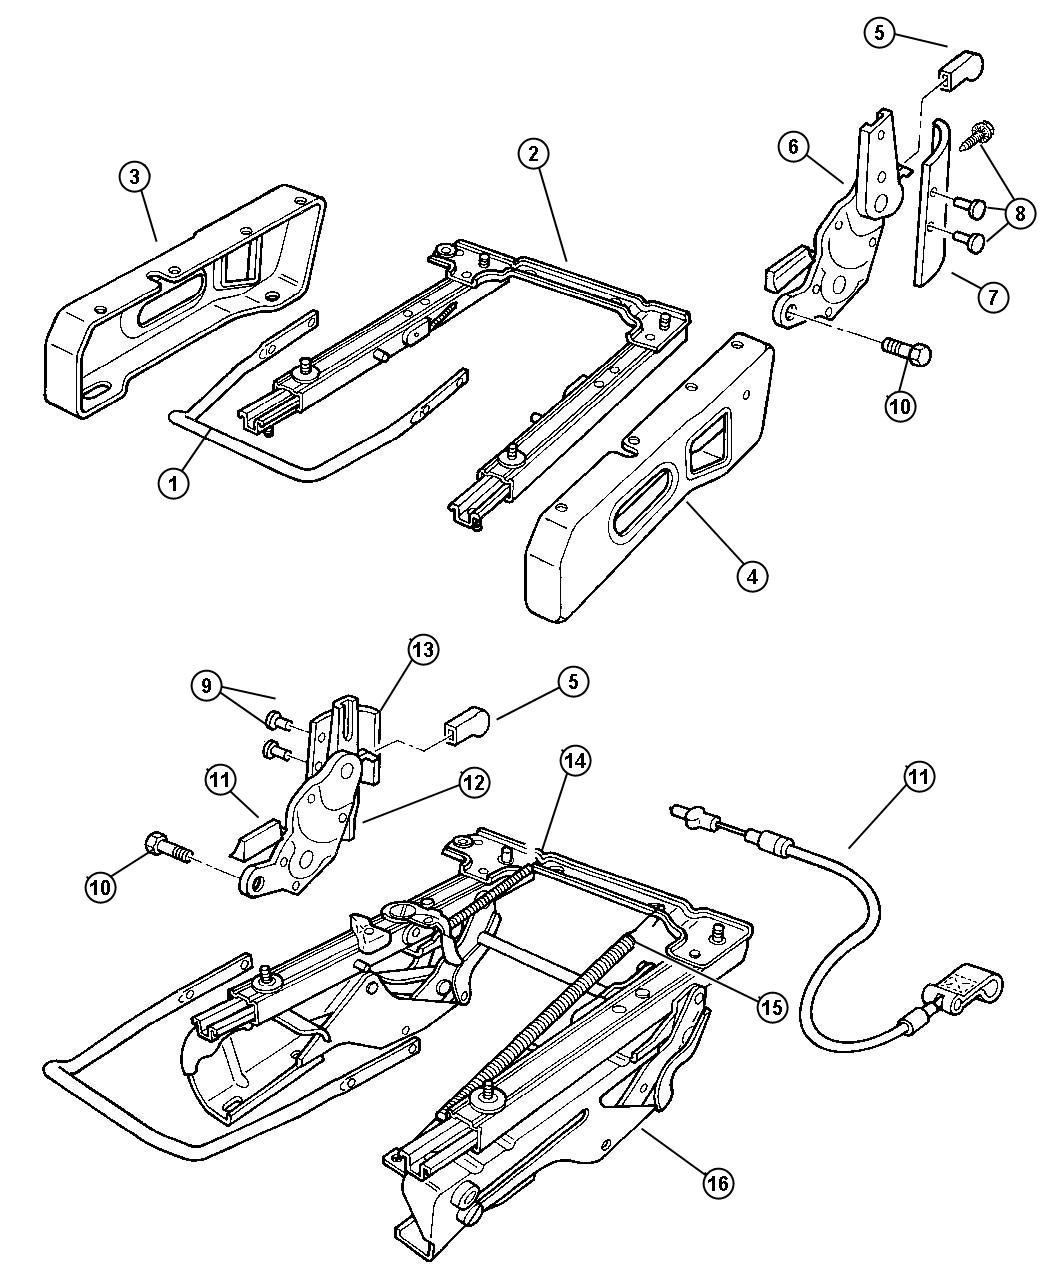 2009 jeep grand cherokee headlight wiring diagram auto electrical Yamaha Wave Blaster related with 2009 jeep grand cherokee headlight wiring diagram